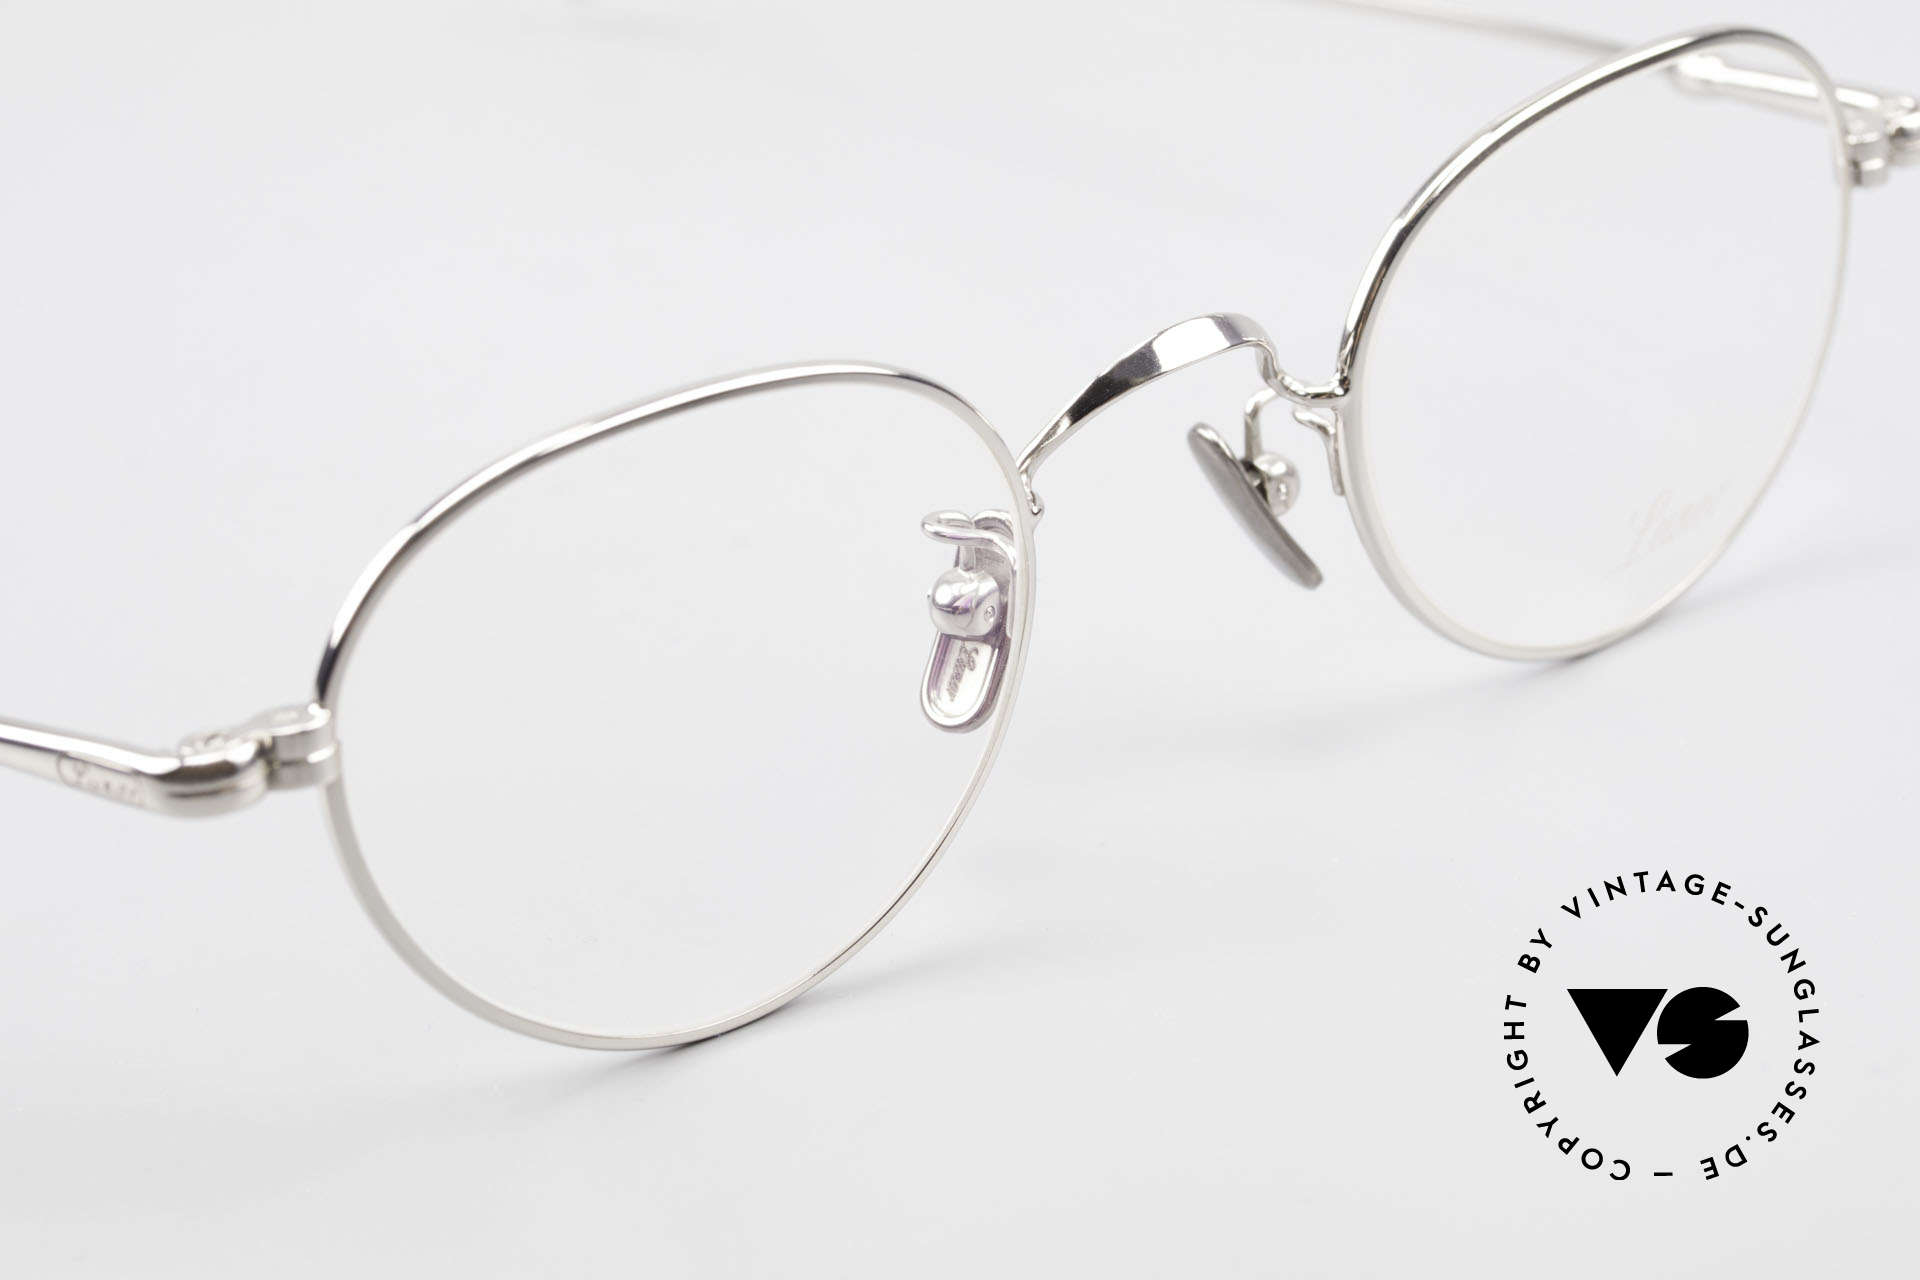 Lunor V 107 Titanium Panto Eyeglasses, thus, we decided to take it into our vintage collection, Made for Men